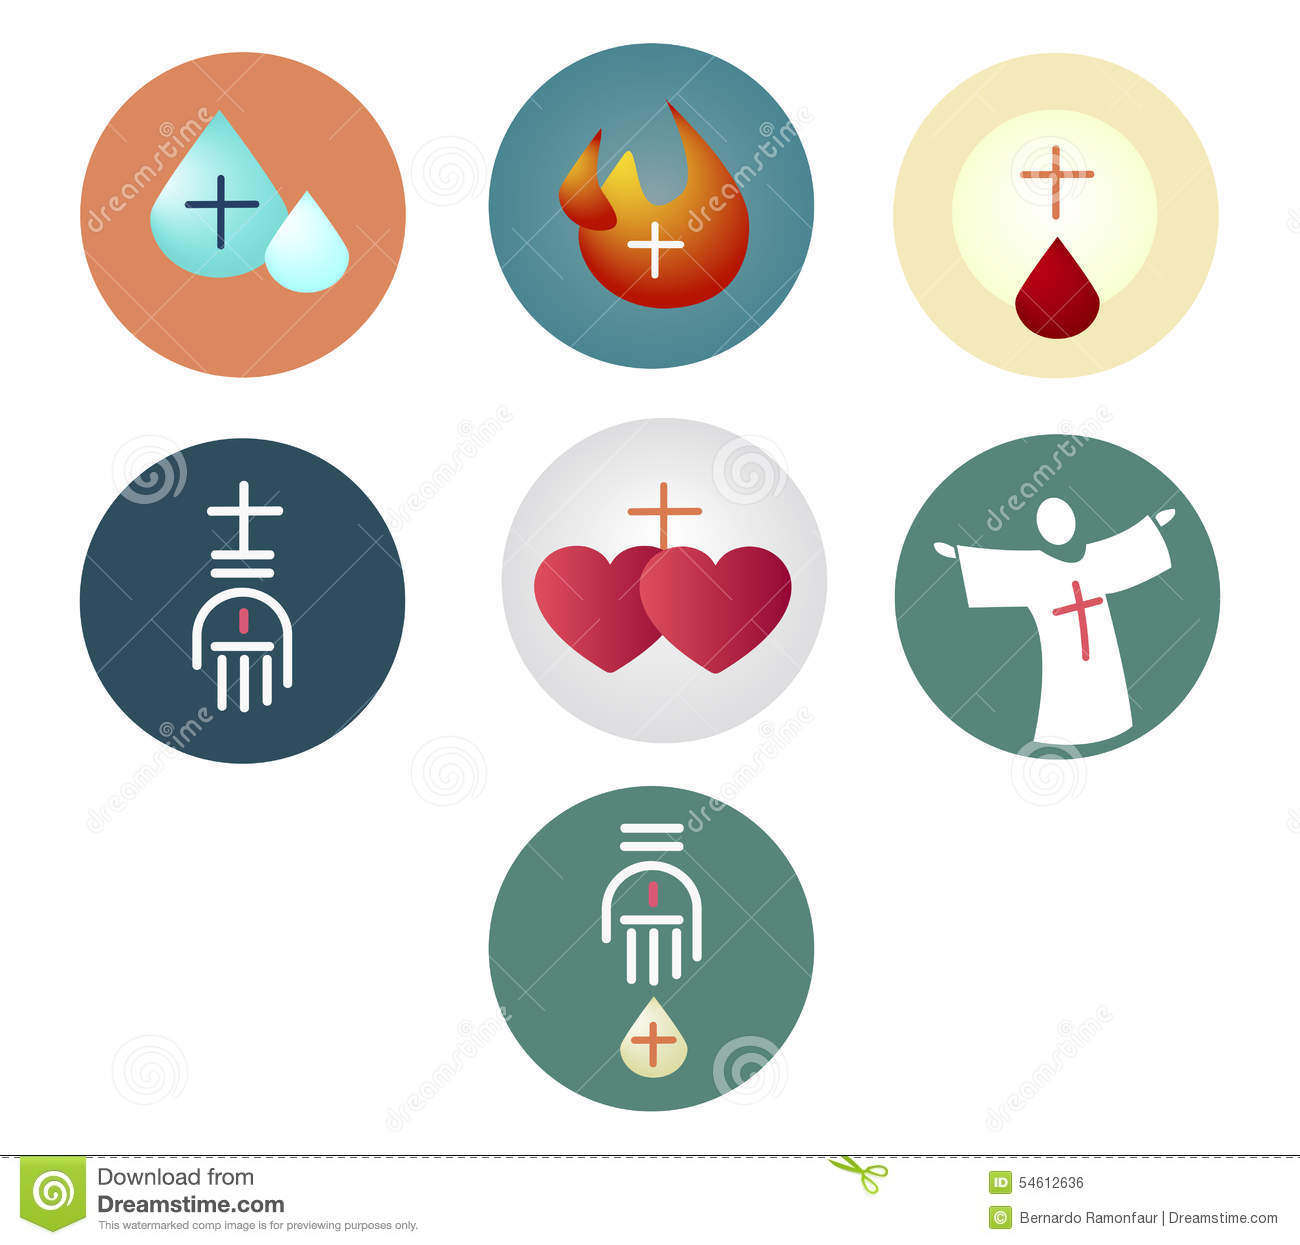 Sacraments stock illustrations 208 sacraments stock vector illustration or drawing of the 7 sacraments of the christian catholic church biocorpaavc Image collections